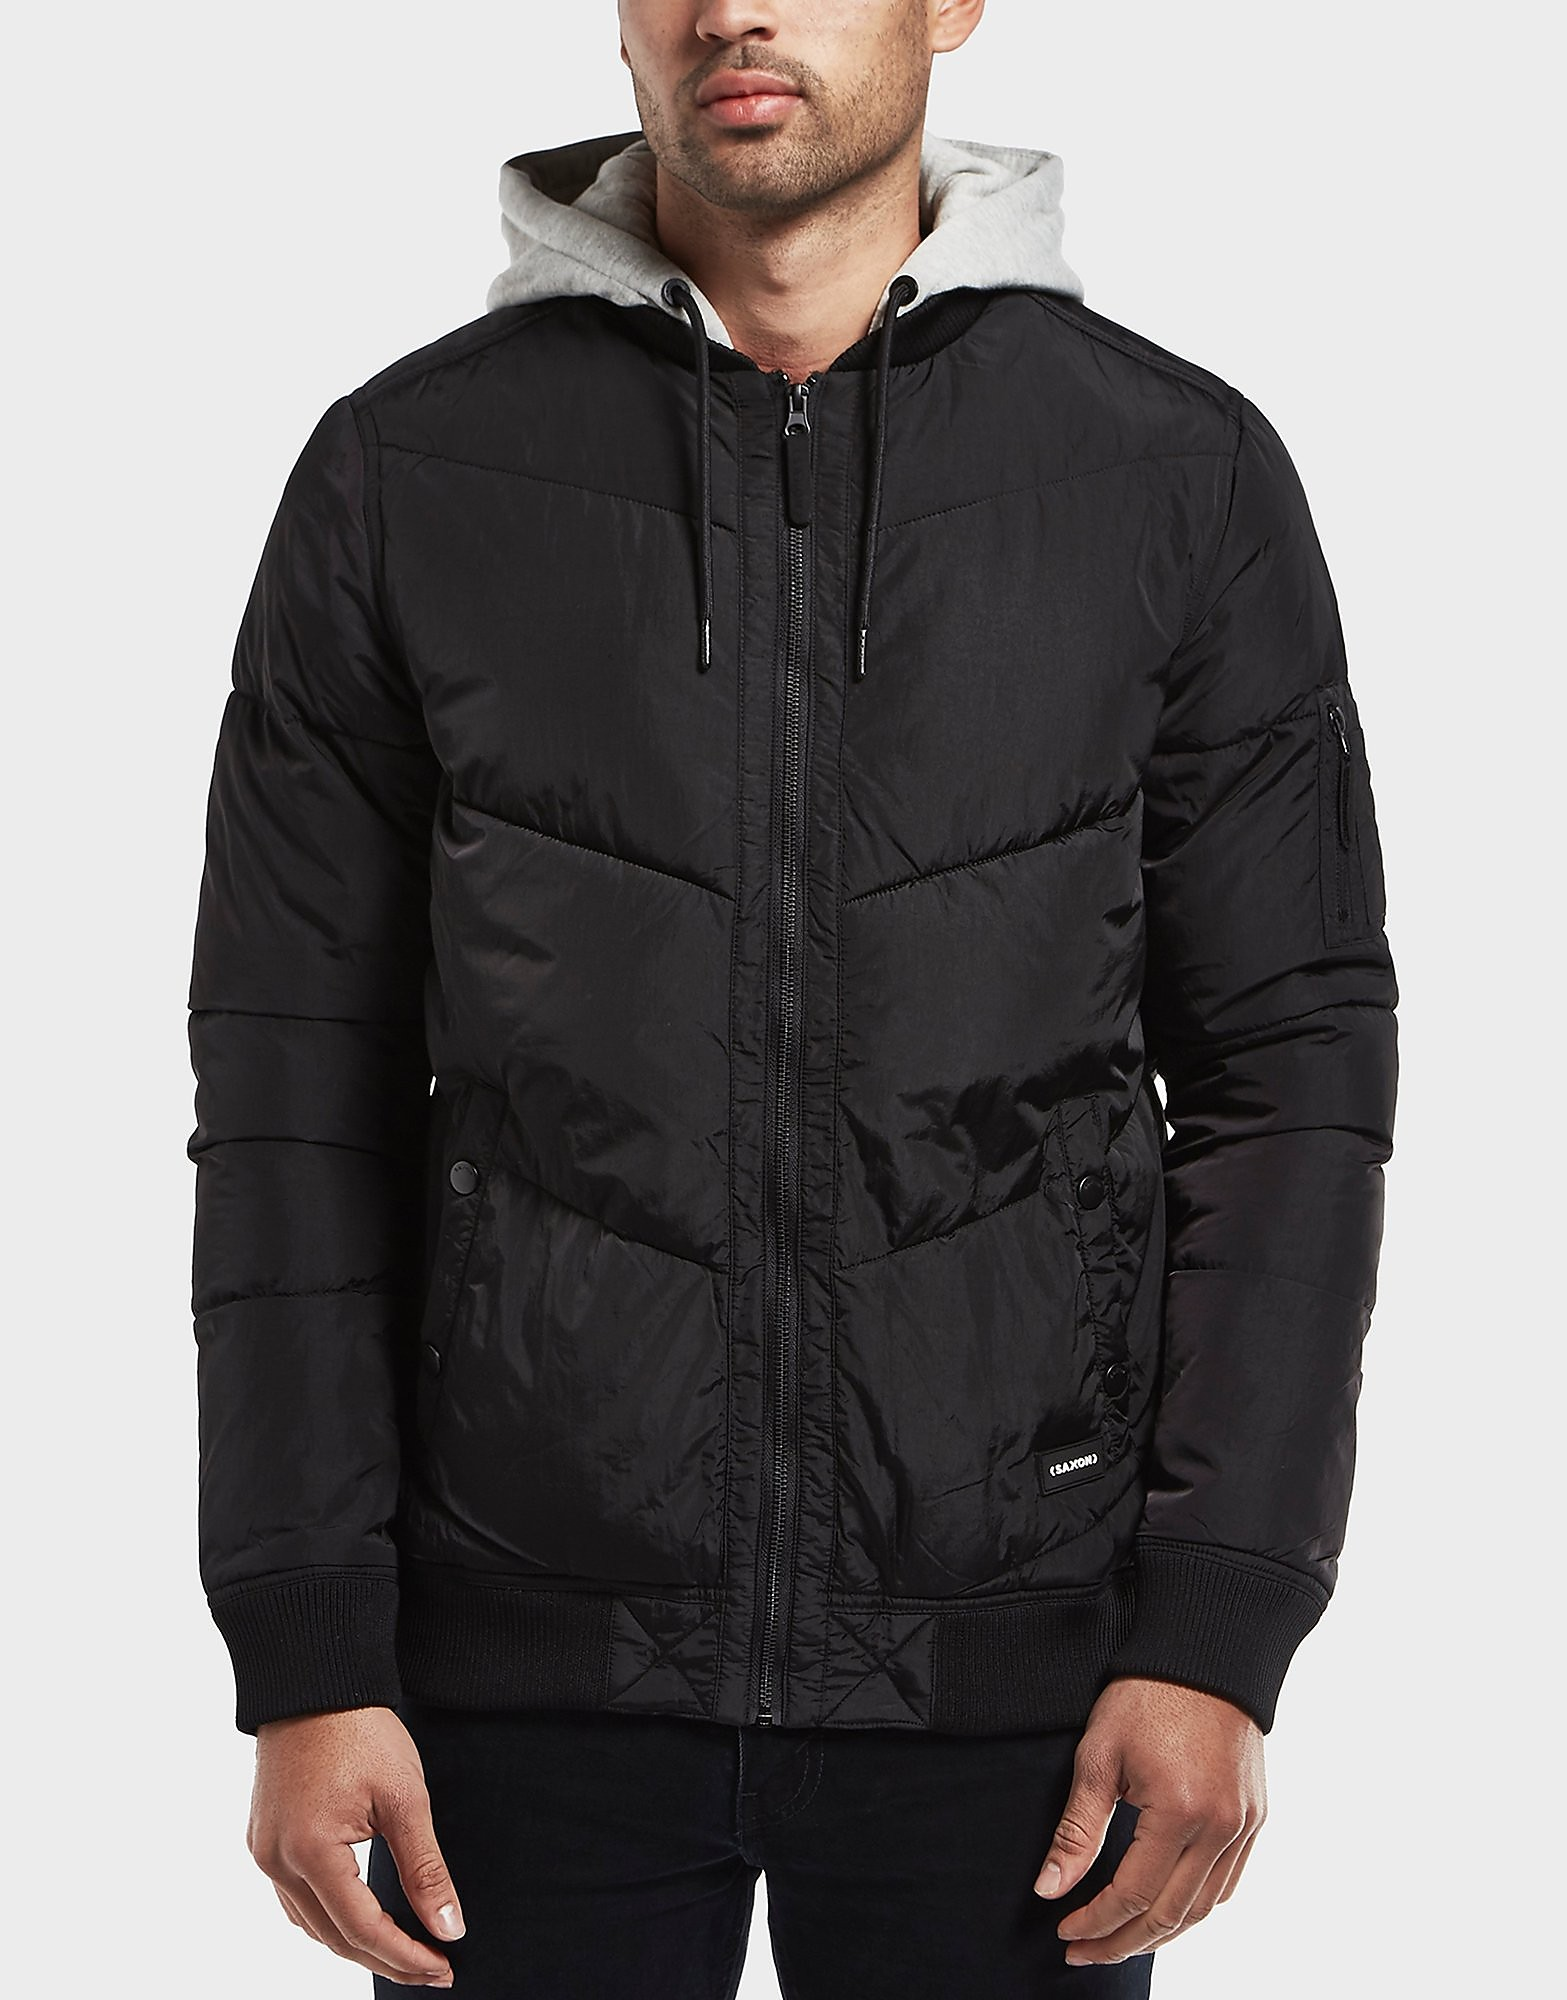 One True Saxon Credit Padded Jacket - Exclusive